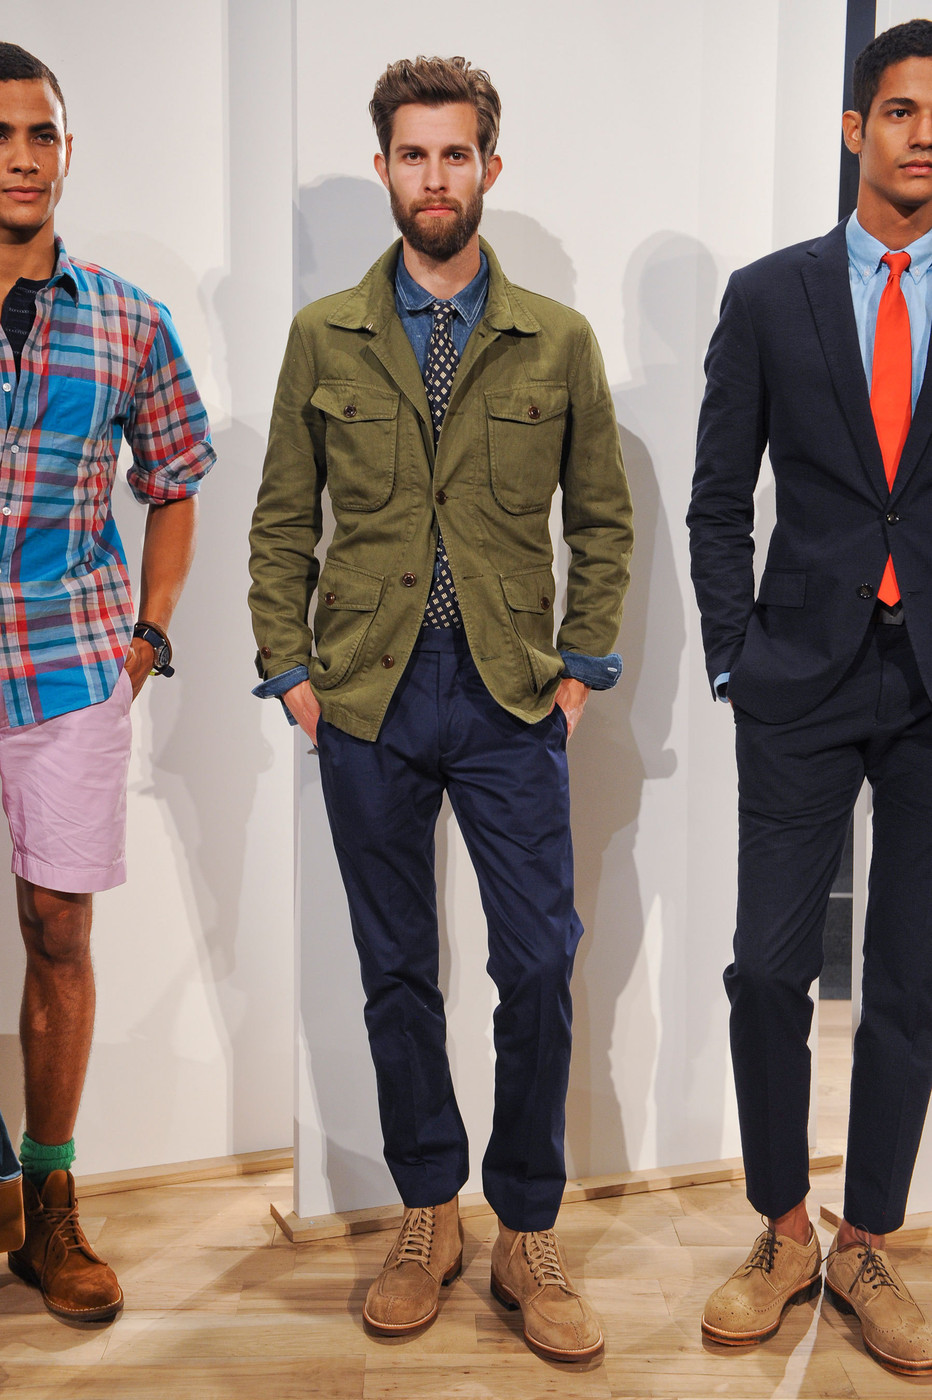 J crew mens spring 2013 runway pictures livingly for J crew mens outfits